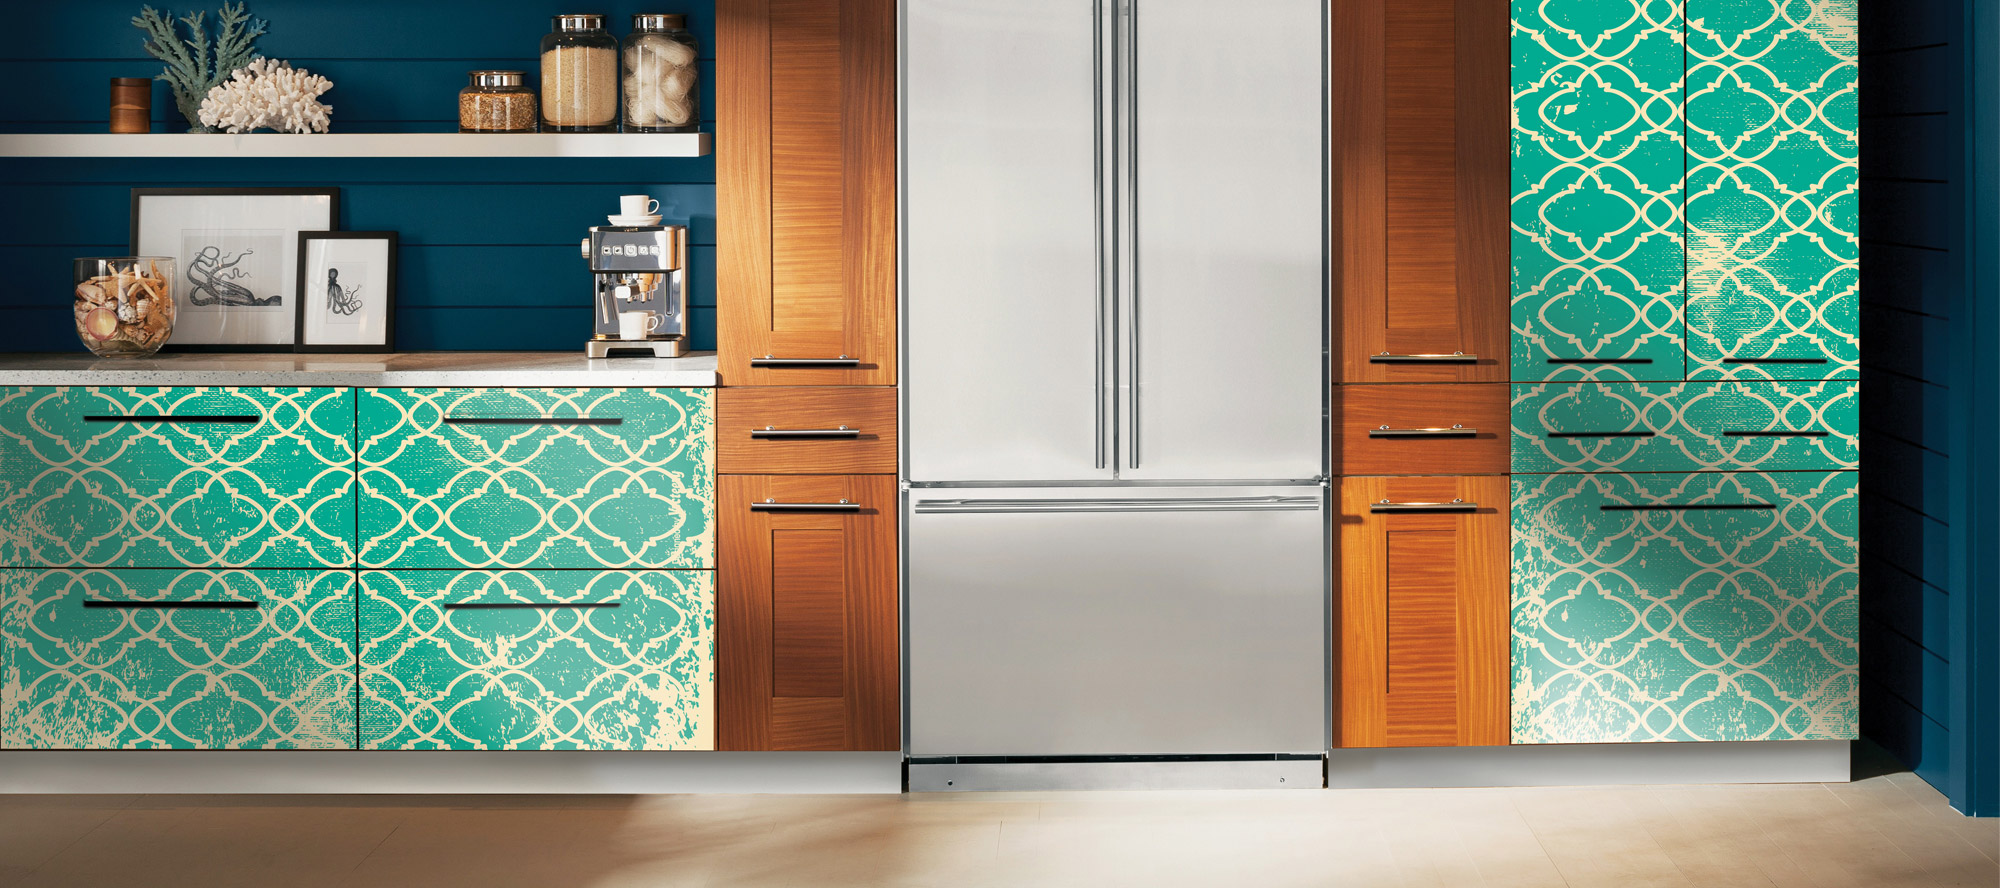 D'infinity, Abstrakt Kreatif Digital Laminates For Kitchen-Sundek International